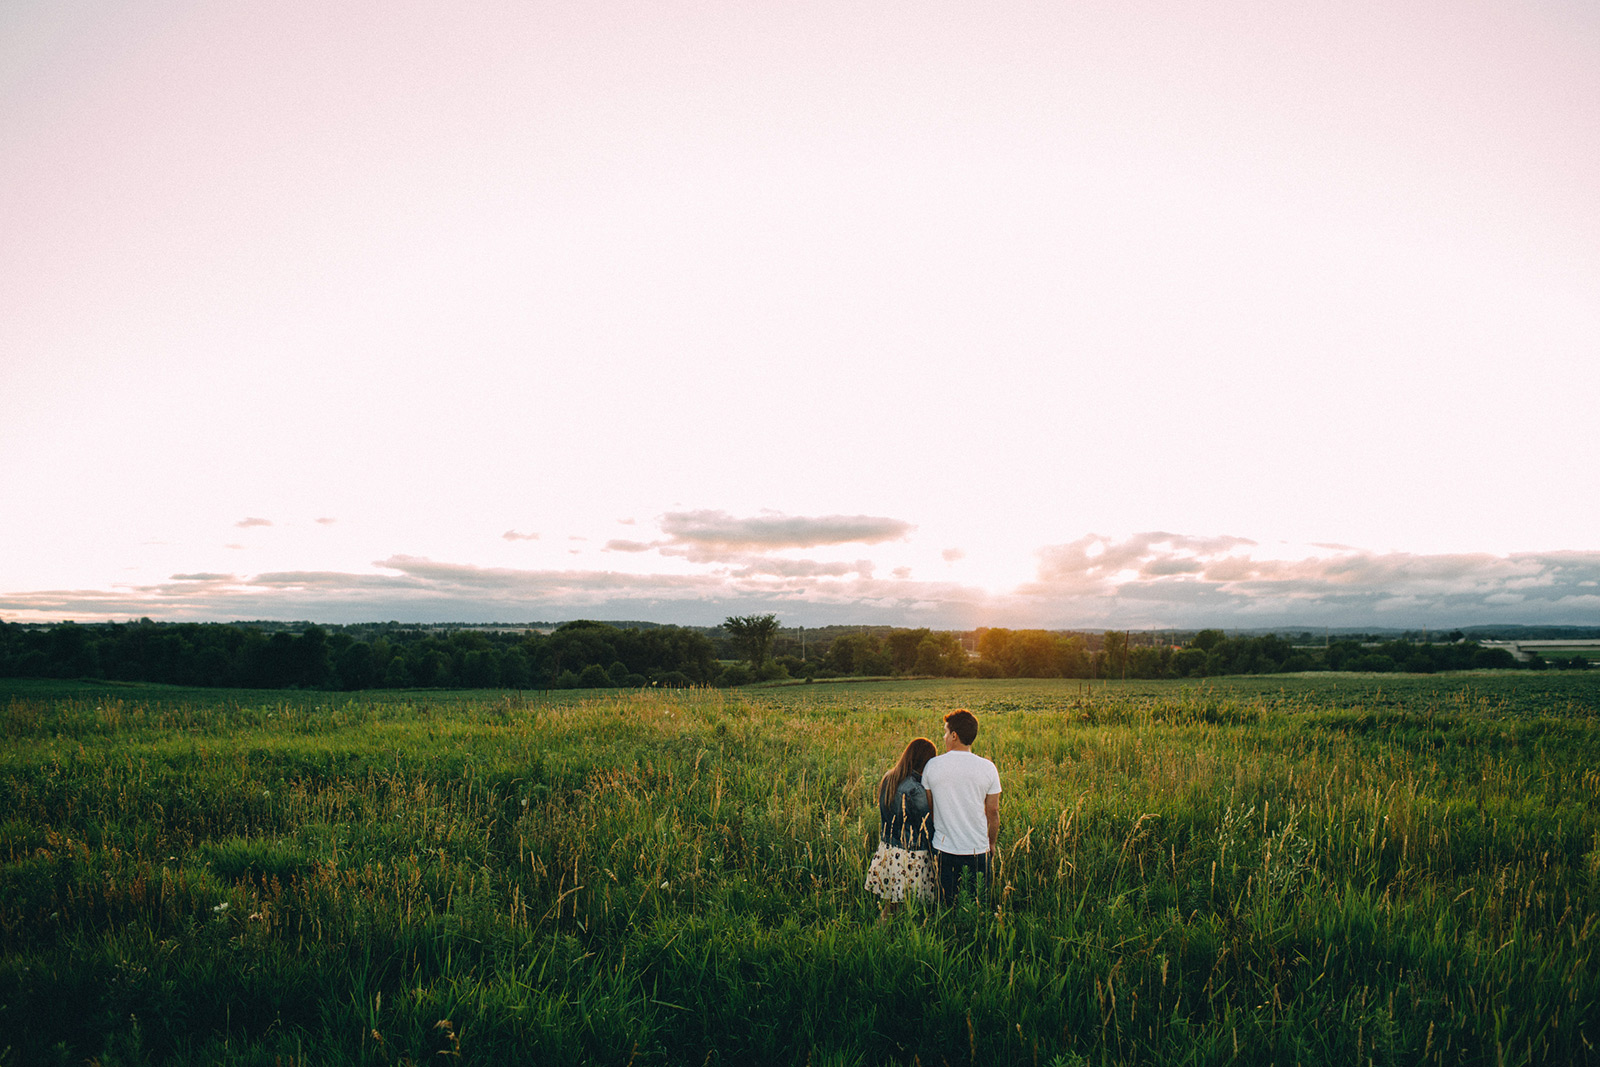 Rural-Ontario-modern-lifestyle-engagement-session-Sam-Wong-Visual-Cravings-AnJ_21